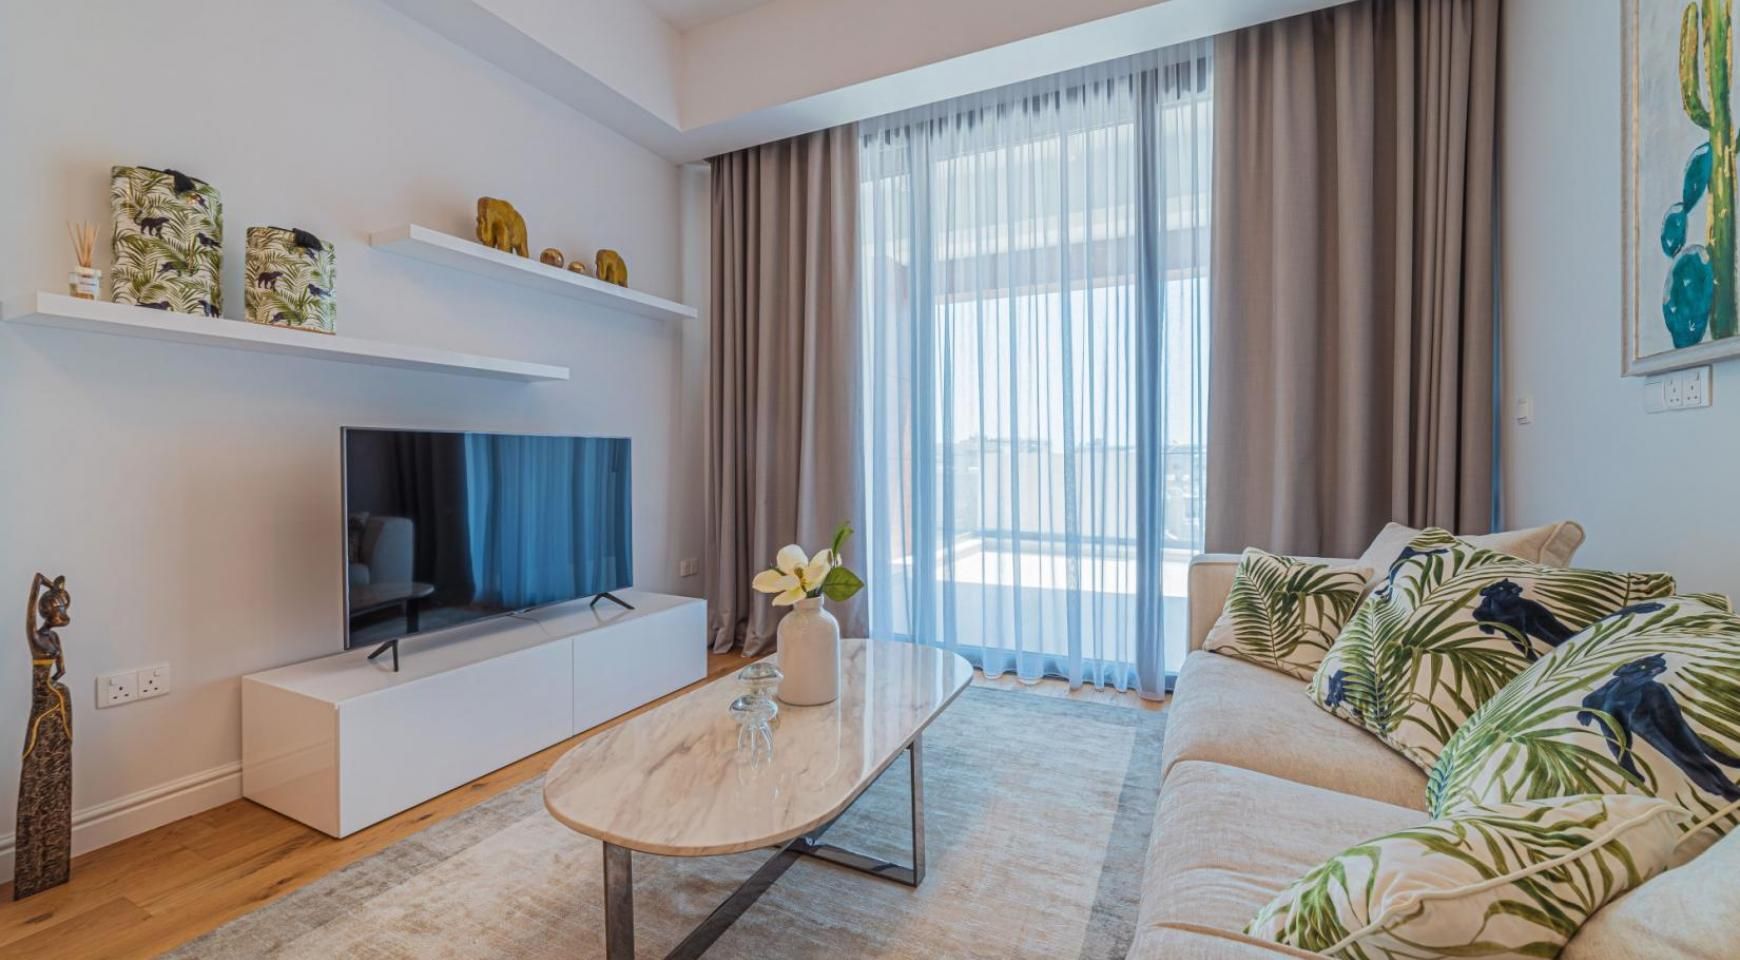 Hortensia Residence, Apt. 302. 2 Bedroom Apartment within a New Complex near the Sea  - 48